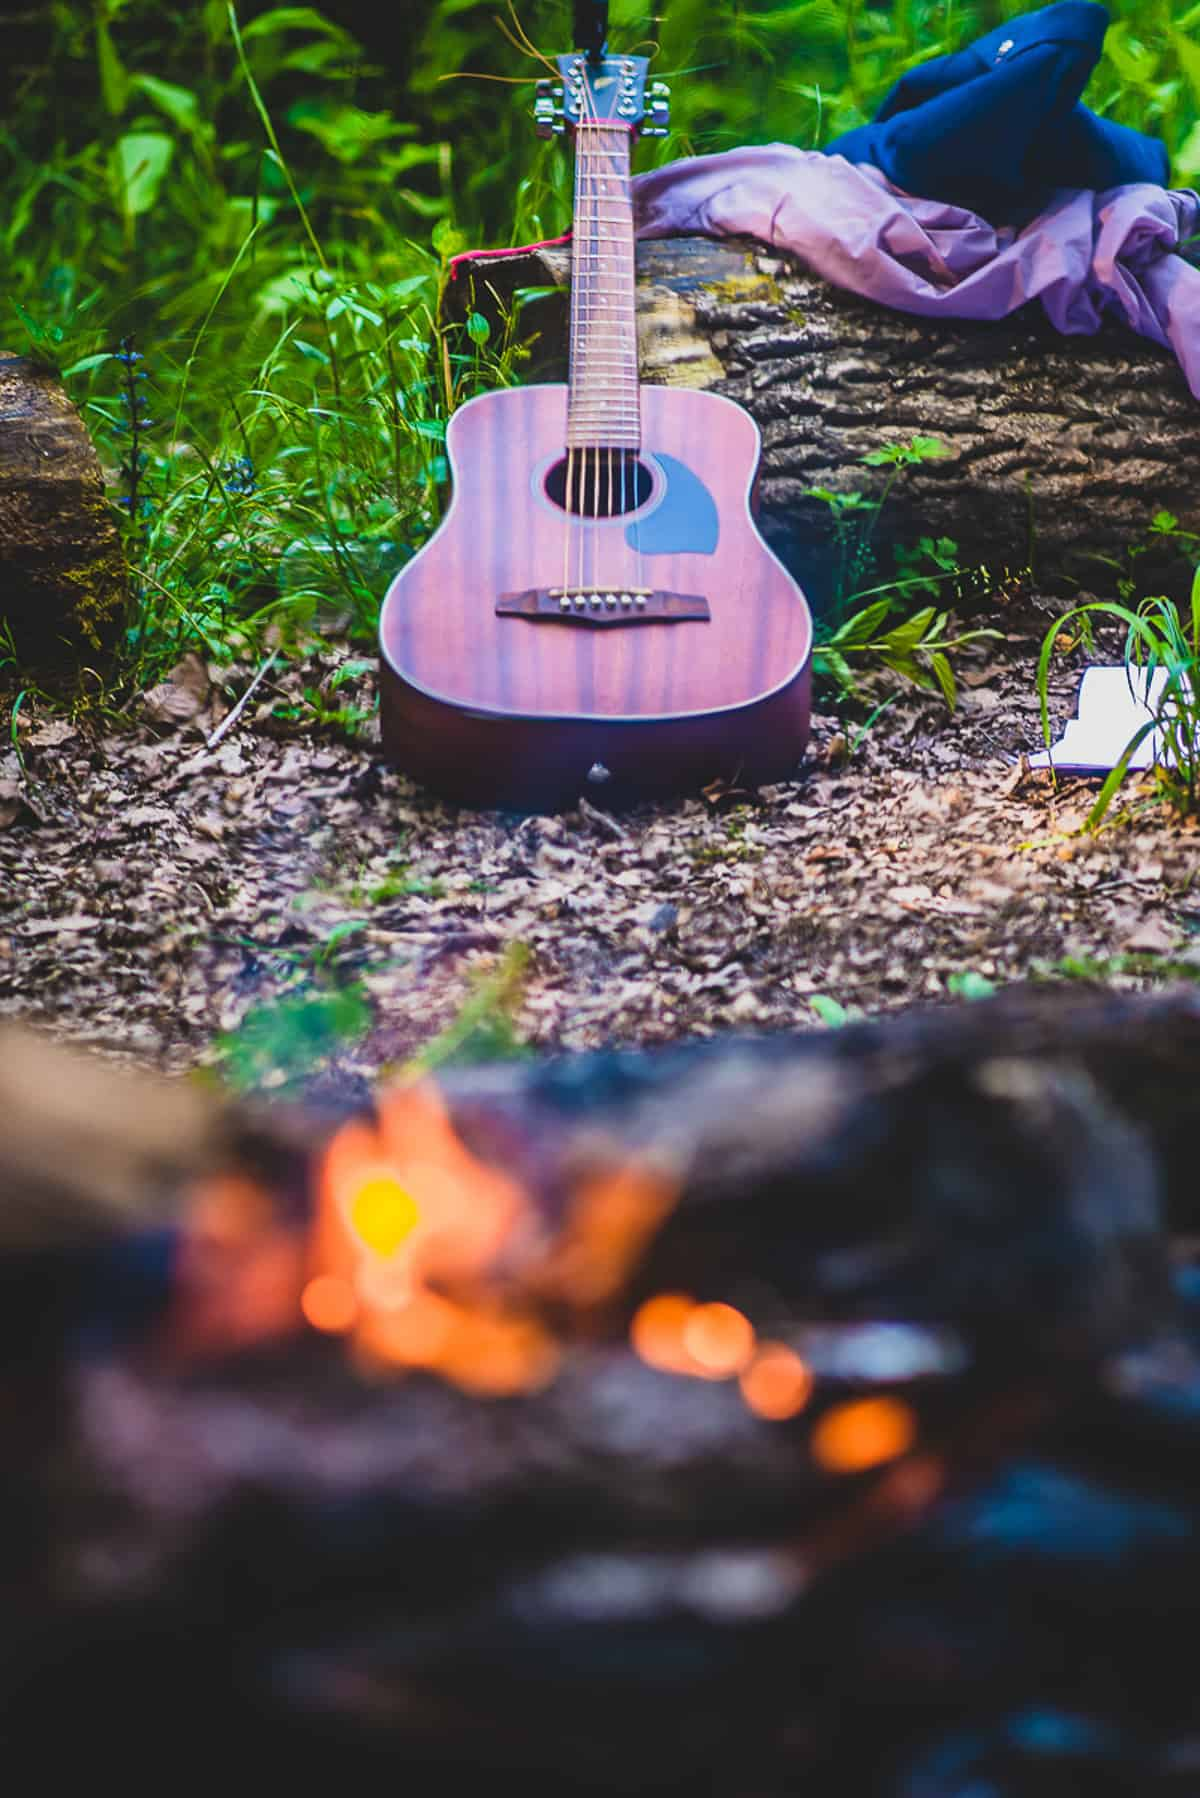 An acoustic guitar and campfire